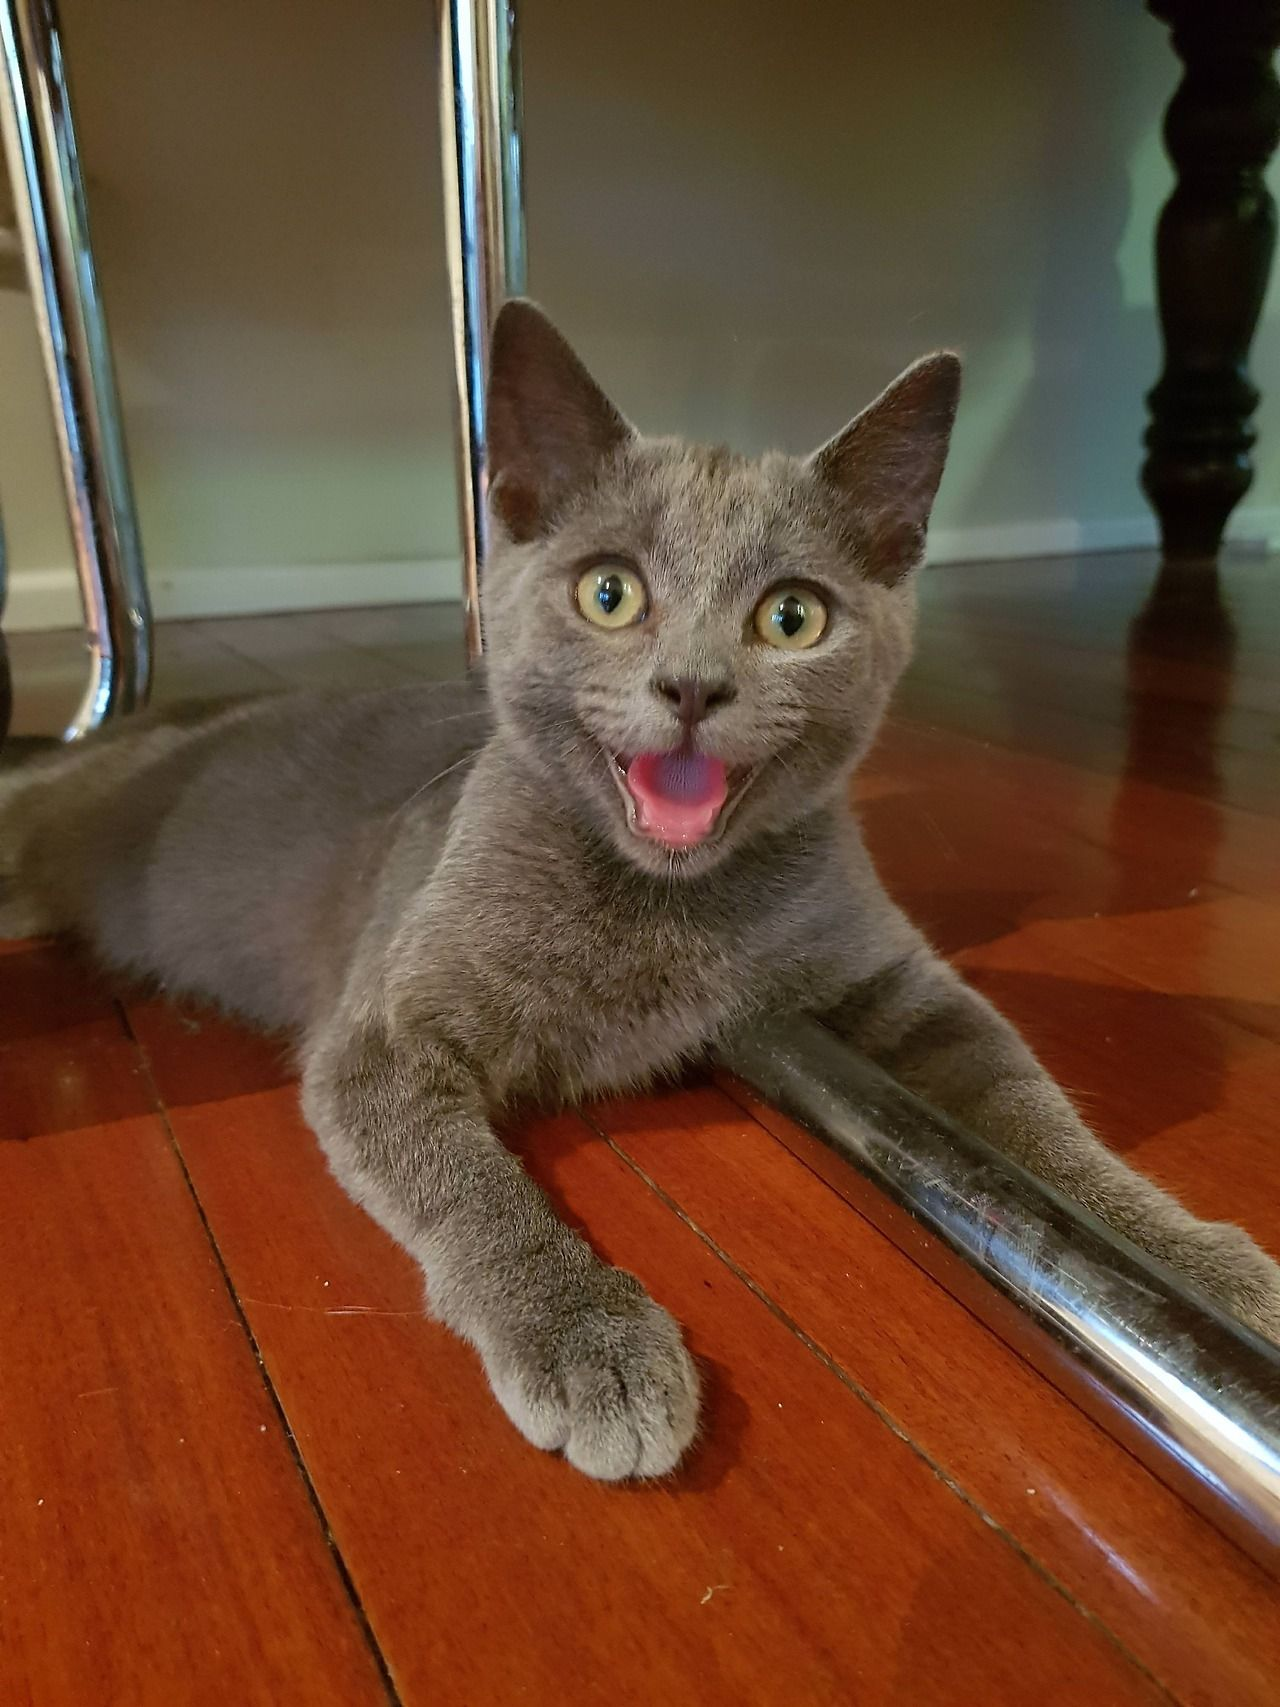 Reddit Meet Teddy The 3 Month Old Kitten We Adopted Yesterday By Truekneegr0w Cats Kitten Catsonweb Cute Ador Russian Blue Cat Cute Cats And Kittens Blue Cats